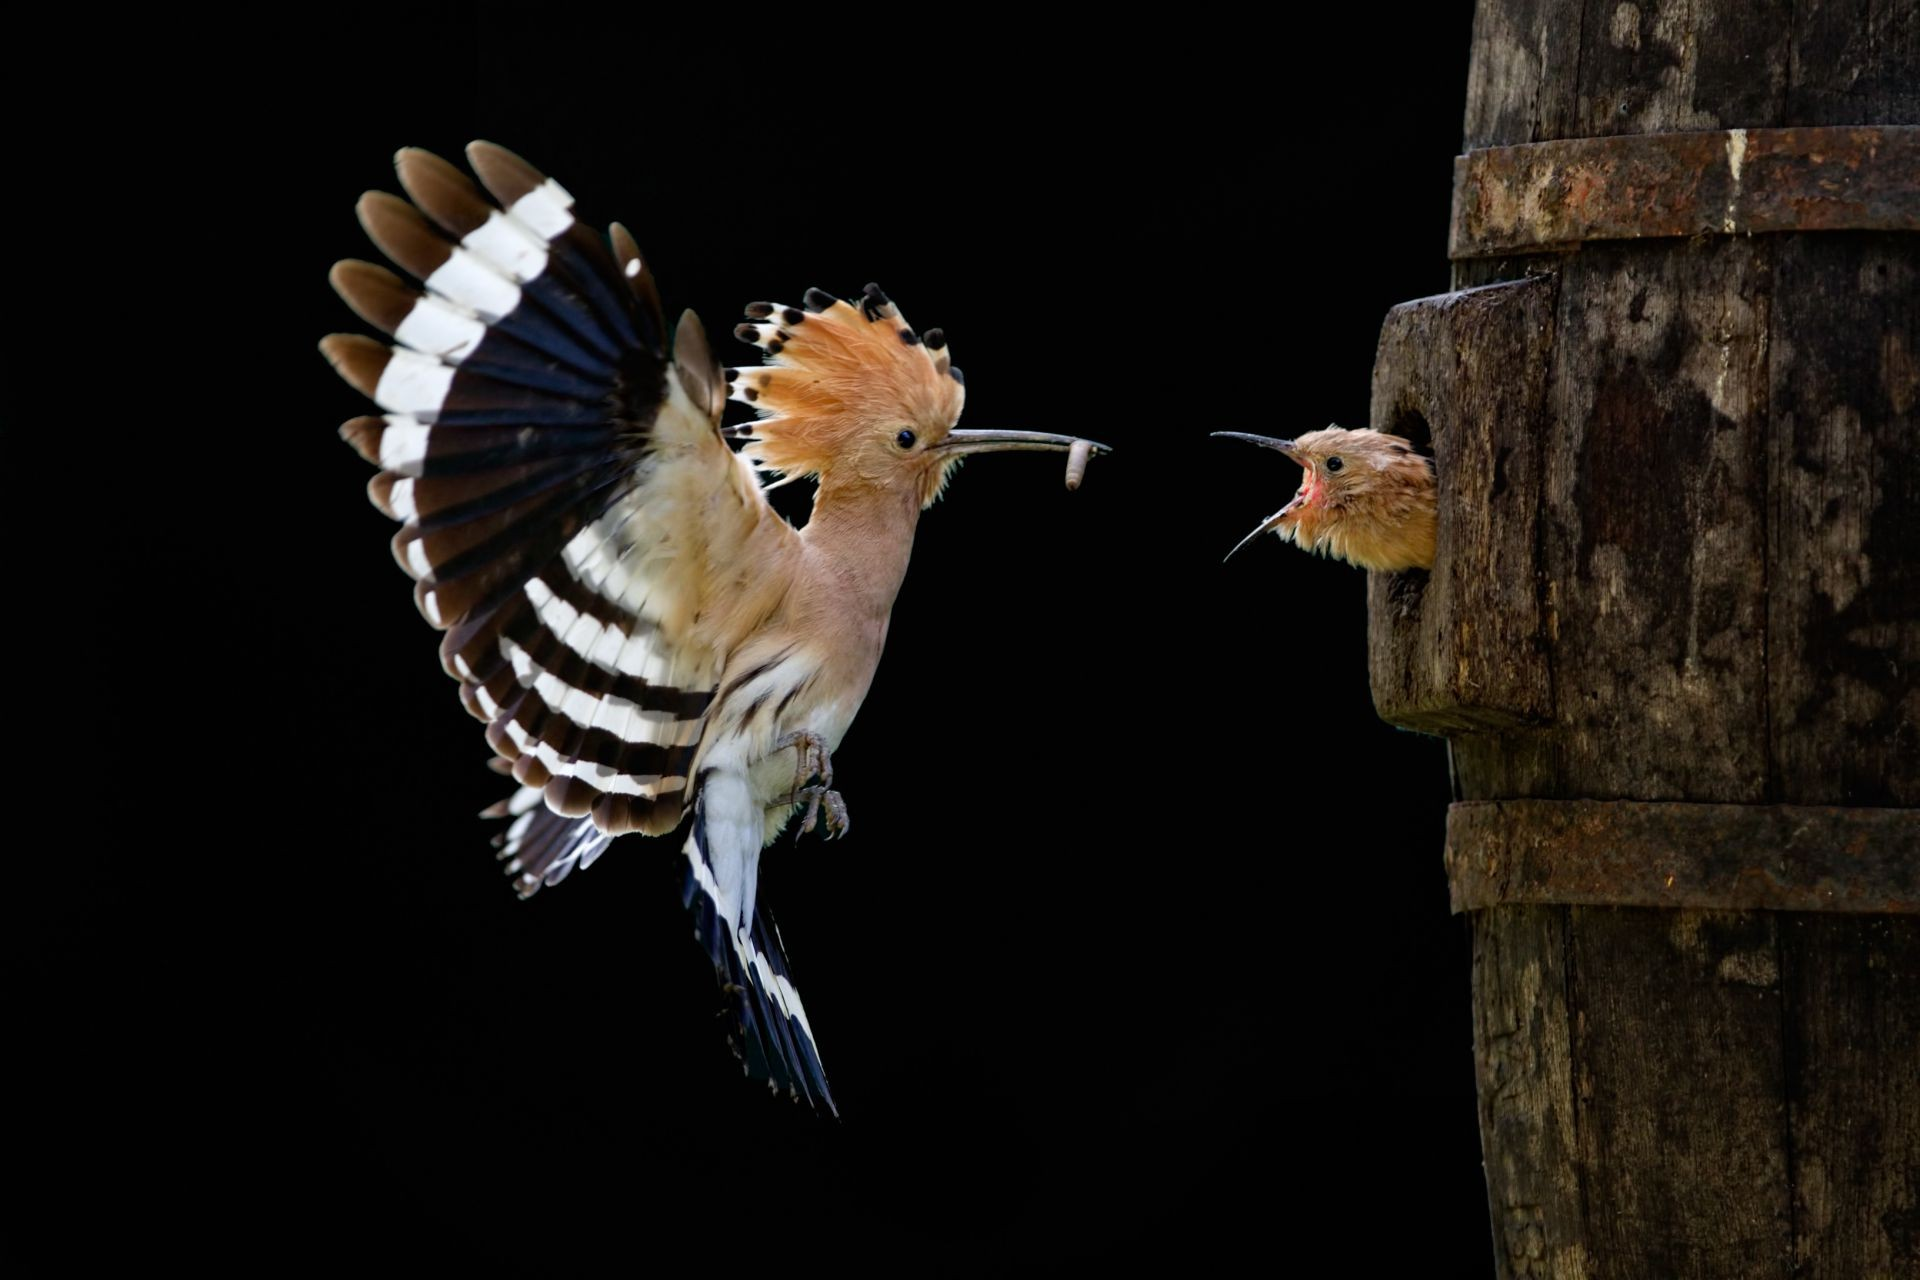 the hoopoe bird flying chick